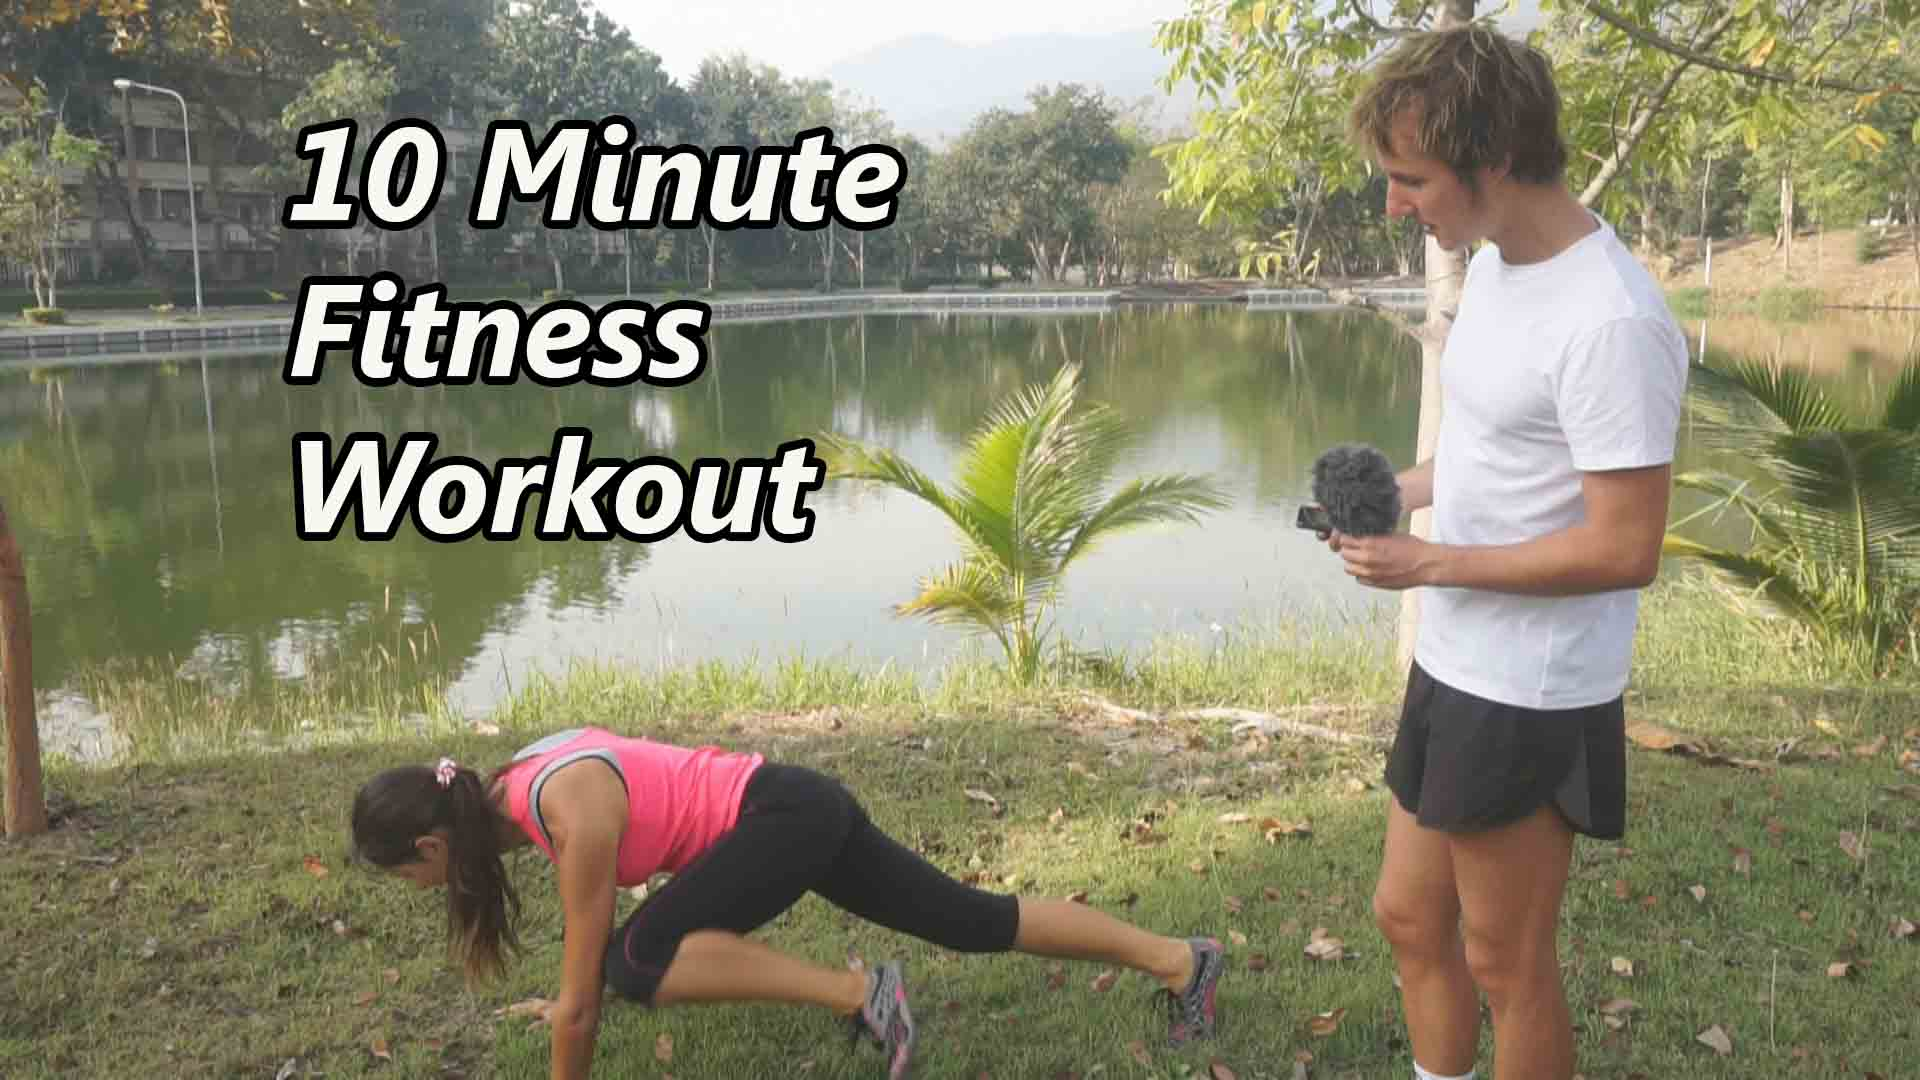 10-Minute Home Full Body Workout To Burn Calories Fast